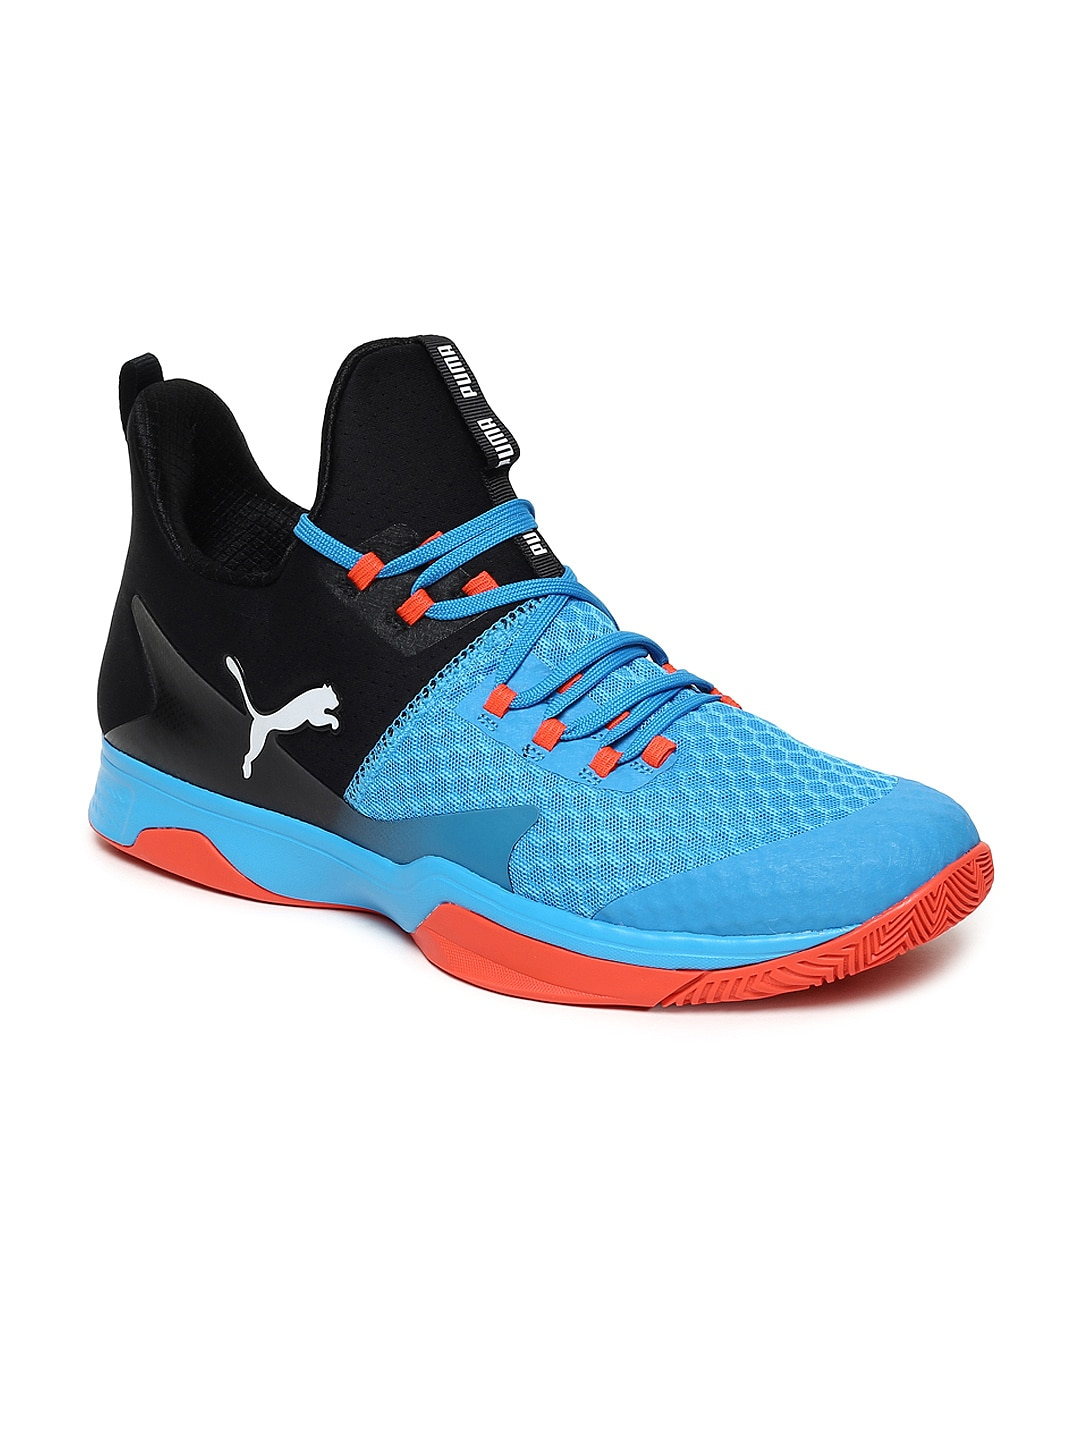 31d3c151762f35 Puma Blue Casual Sports - Buy Puma Blue Casual Sports online in India